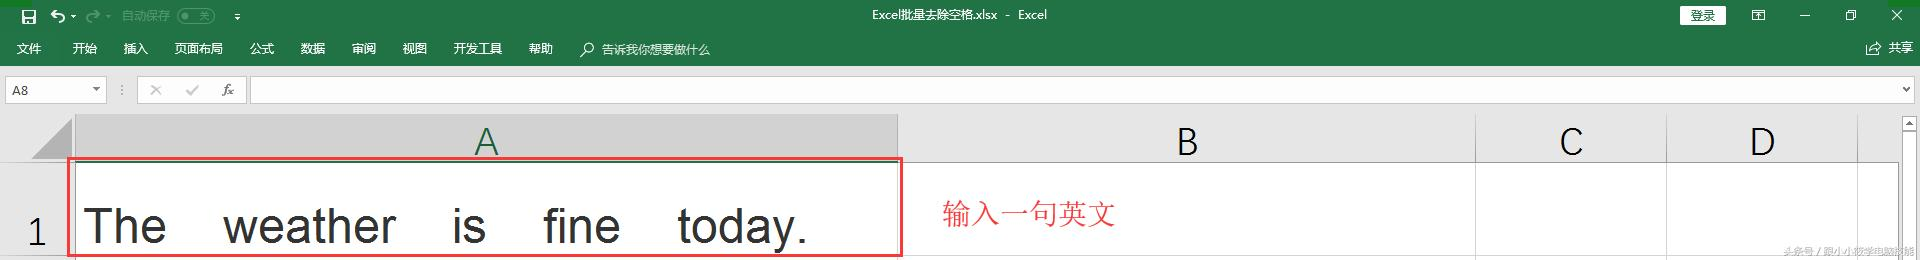 「Excel技巧」一分钟教你学会Excel批量去除空格!